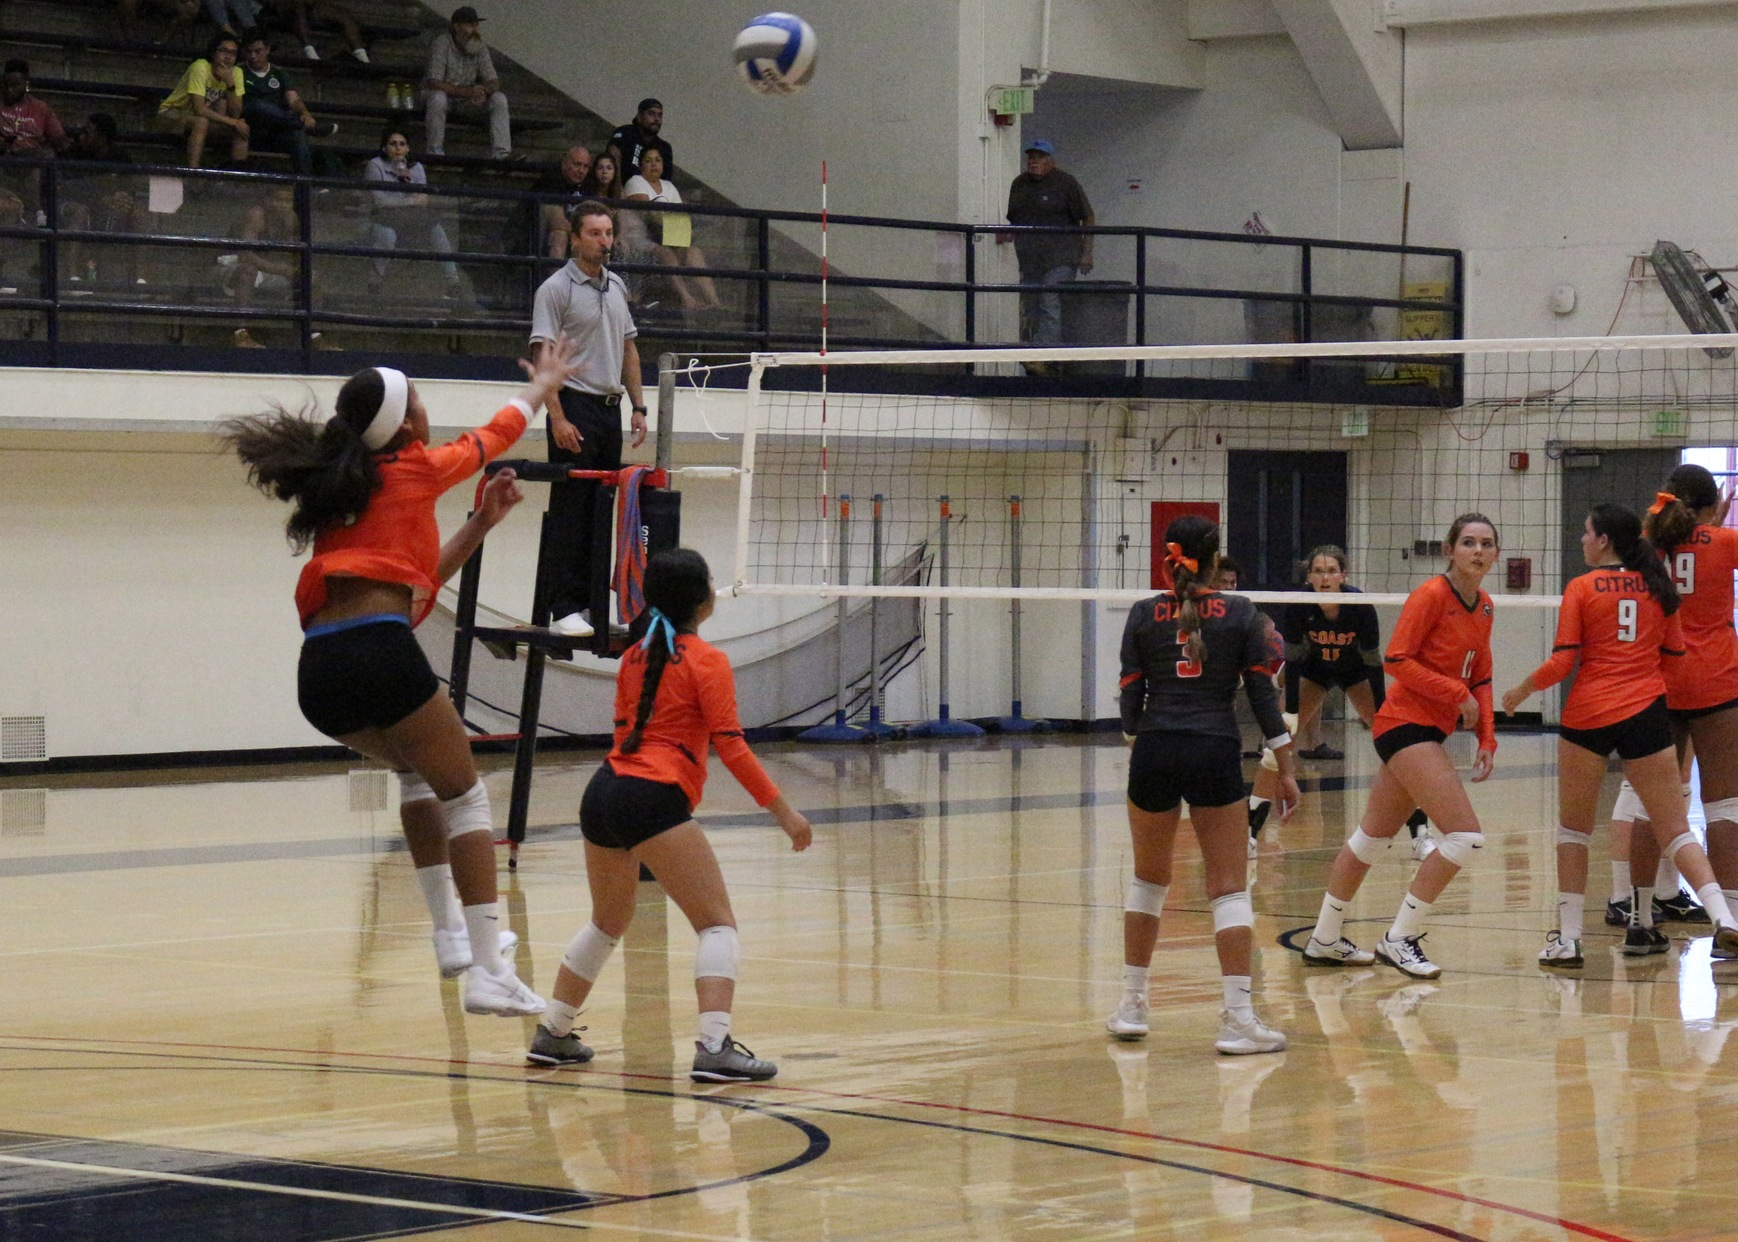 Freshman setter Vanessa Warren serves up a jump floater in Wednesday's match vs Orange Coast. Image: Thomas Garcia